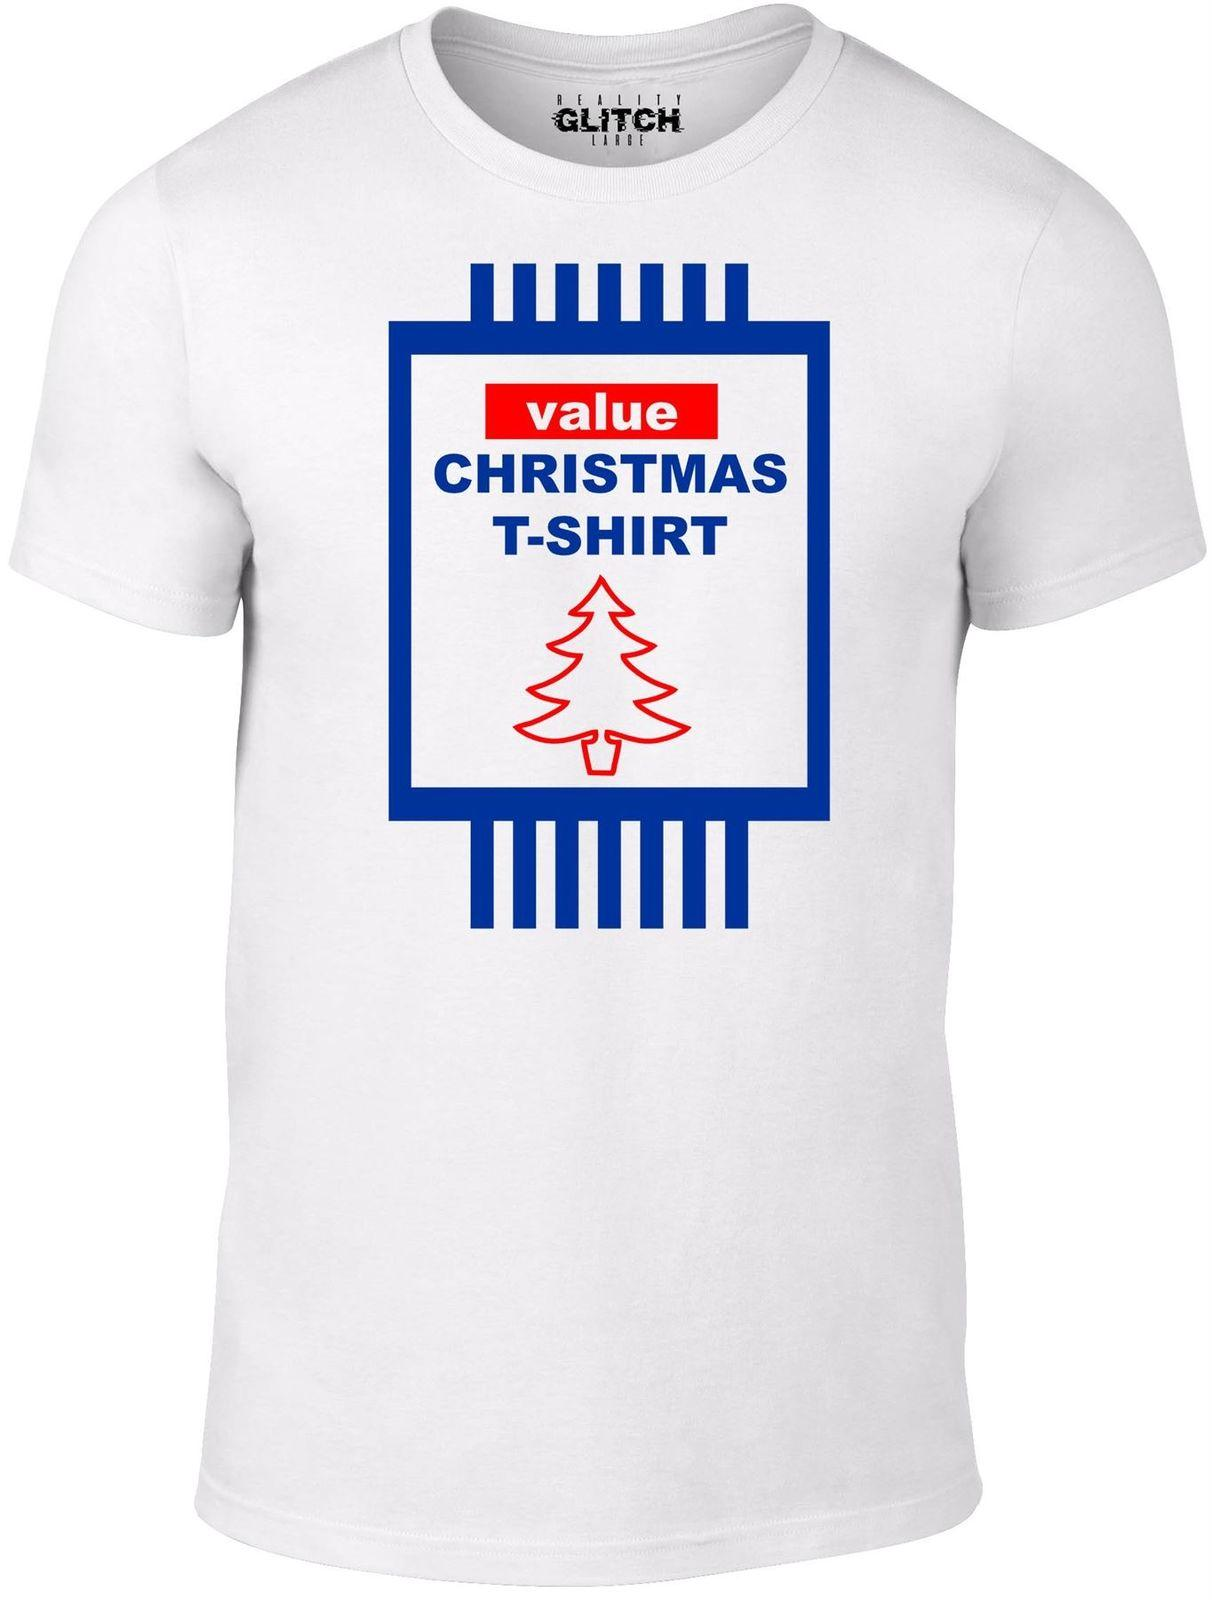 mens value christmas t shirt tesco cheap funny xmas novelty online with 1299piece on beidhgate09s store dhgatecom